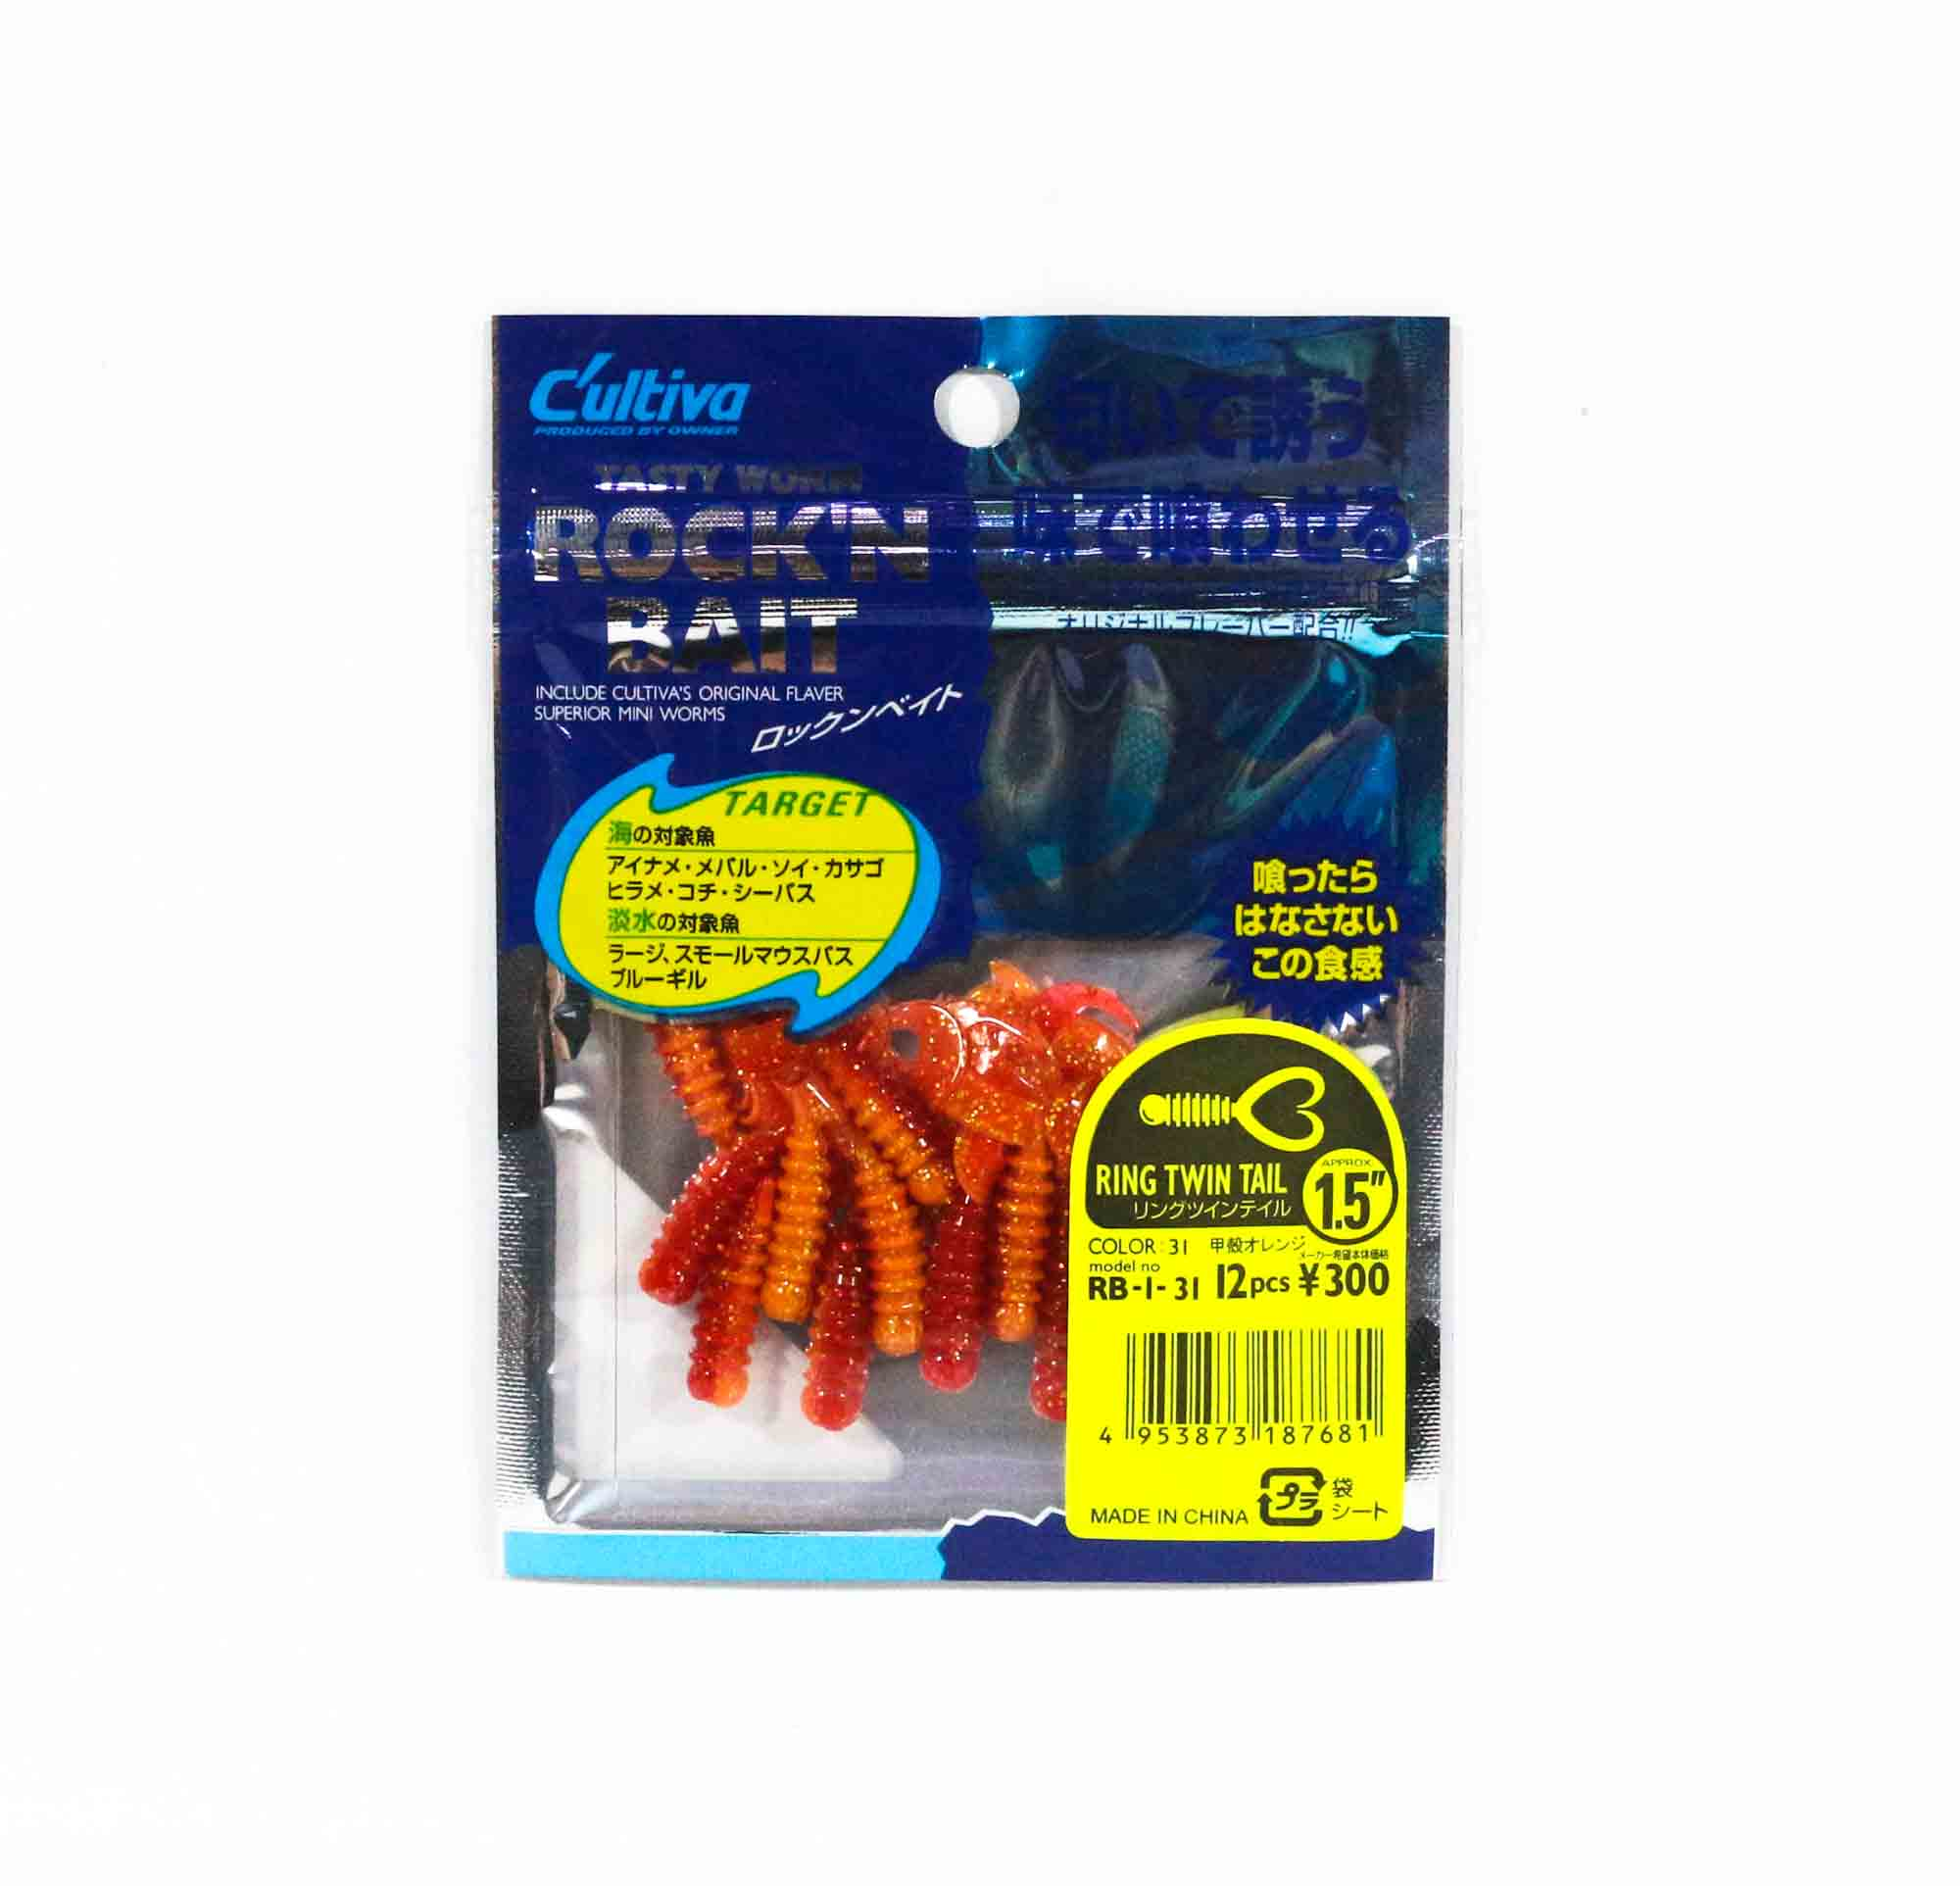 Owner Soft Lure RB-1 Ring Twin Tail 12 Pieces 1.5 Inches 31 (7681)